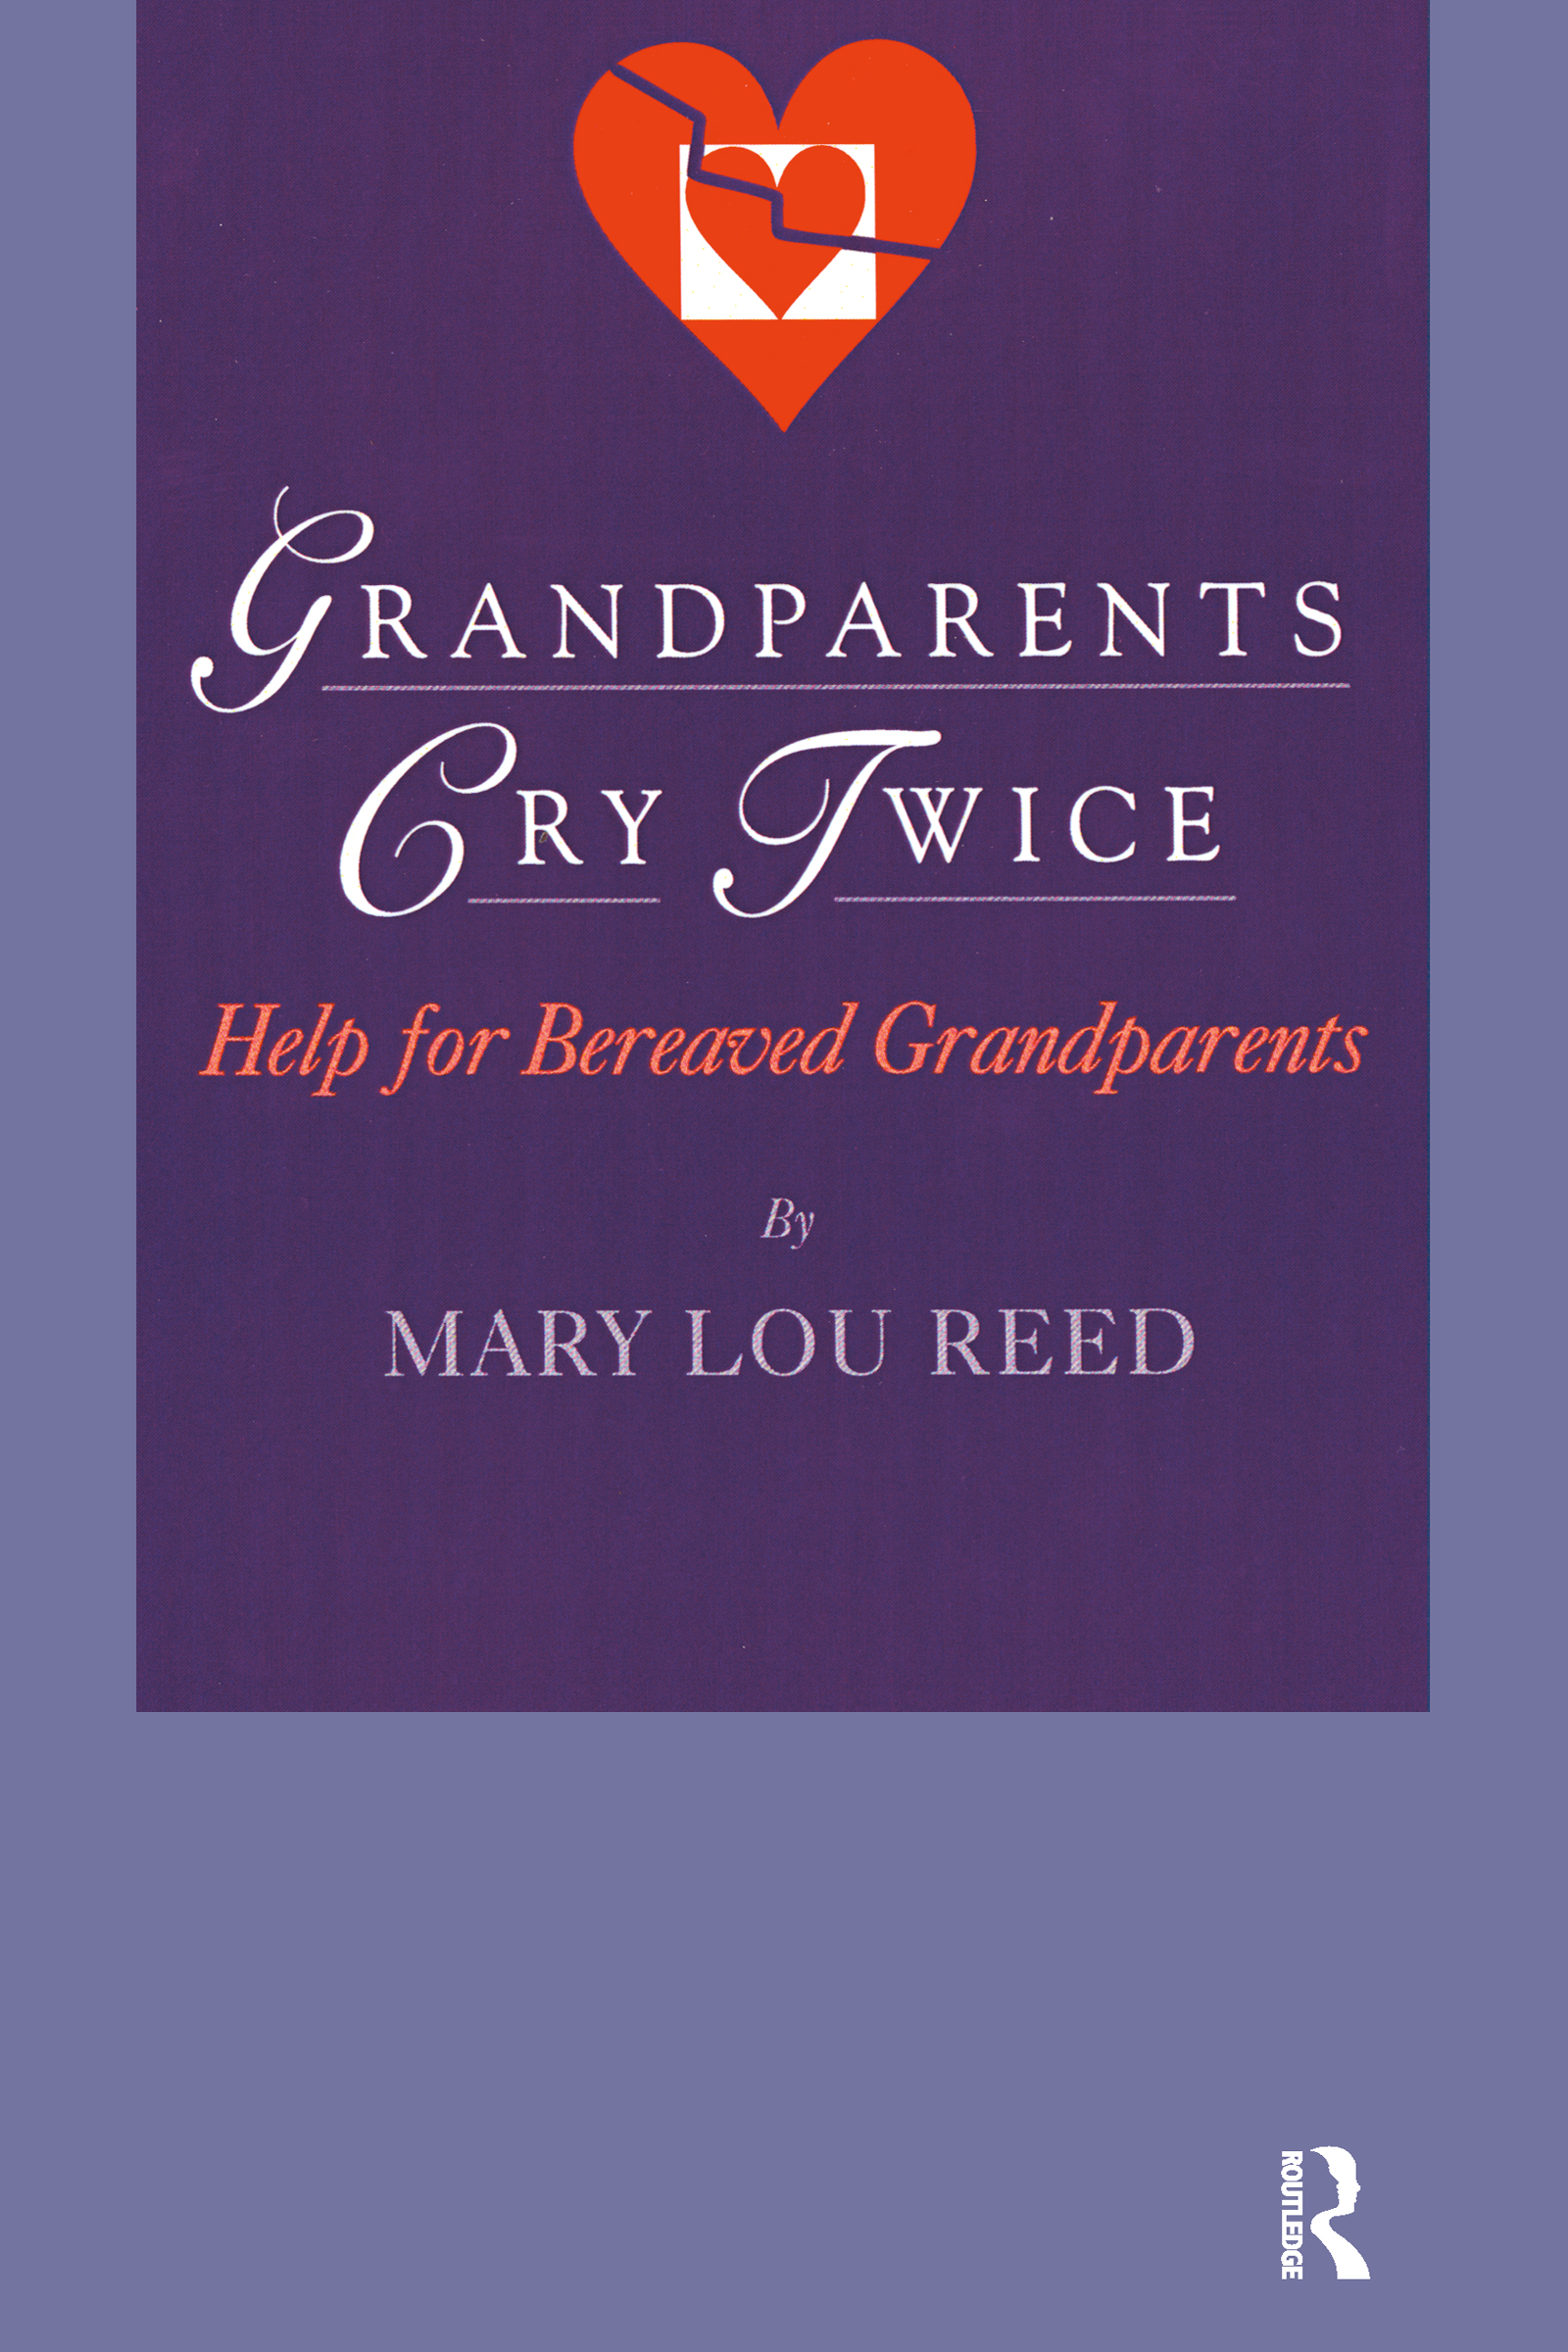 Grandparents Cry Twice: Help for Bereaved Grandparents